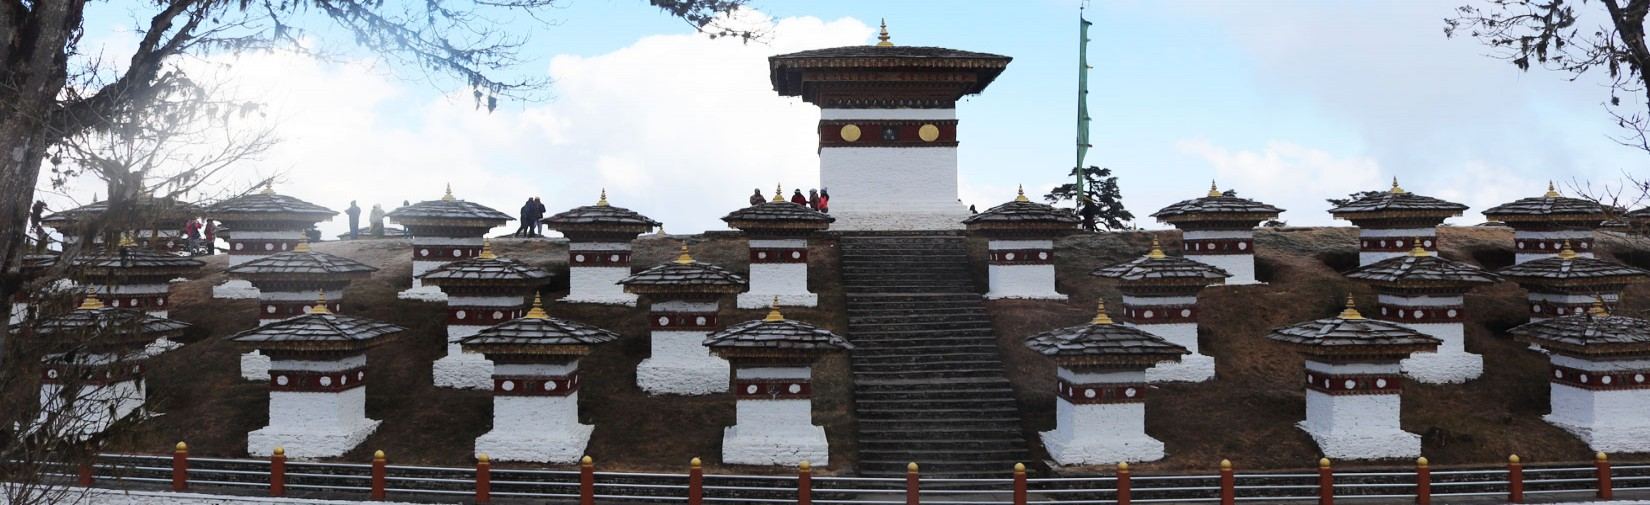 Beautiful Bhutan Buddhist/Himalayan Kingdom 5 days